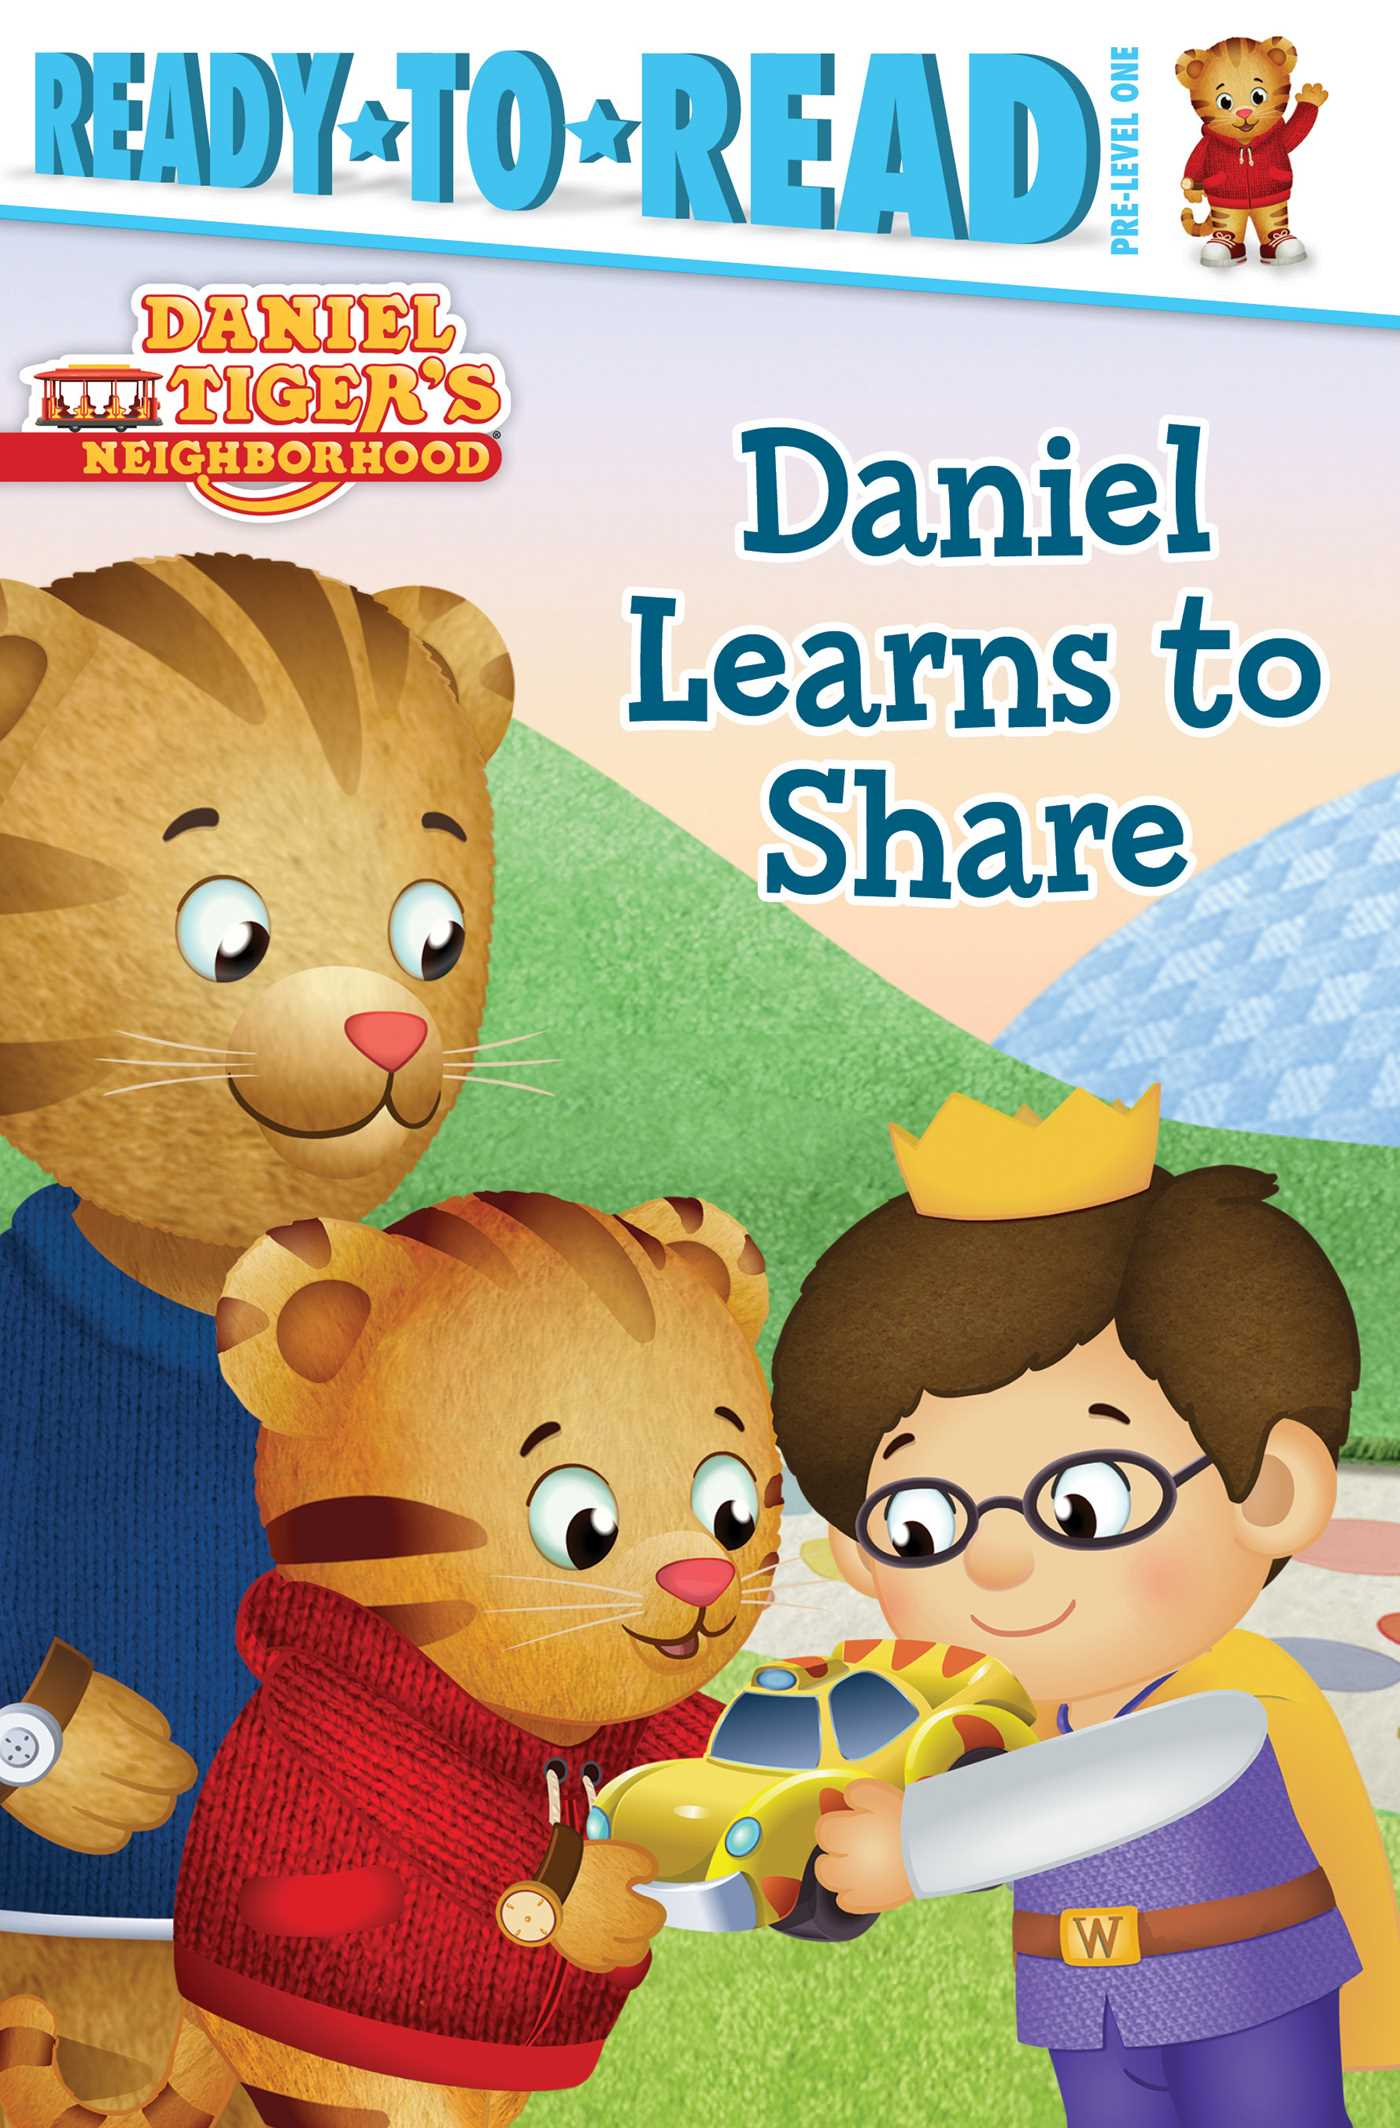 Daniel learns to share 9781481467520 hr